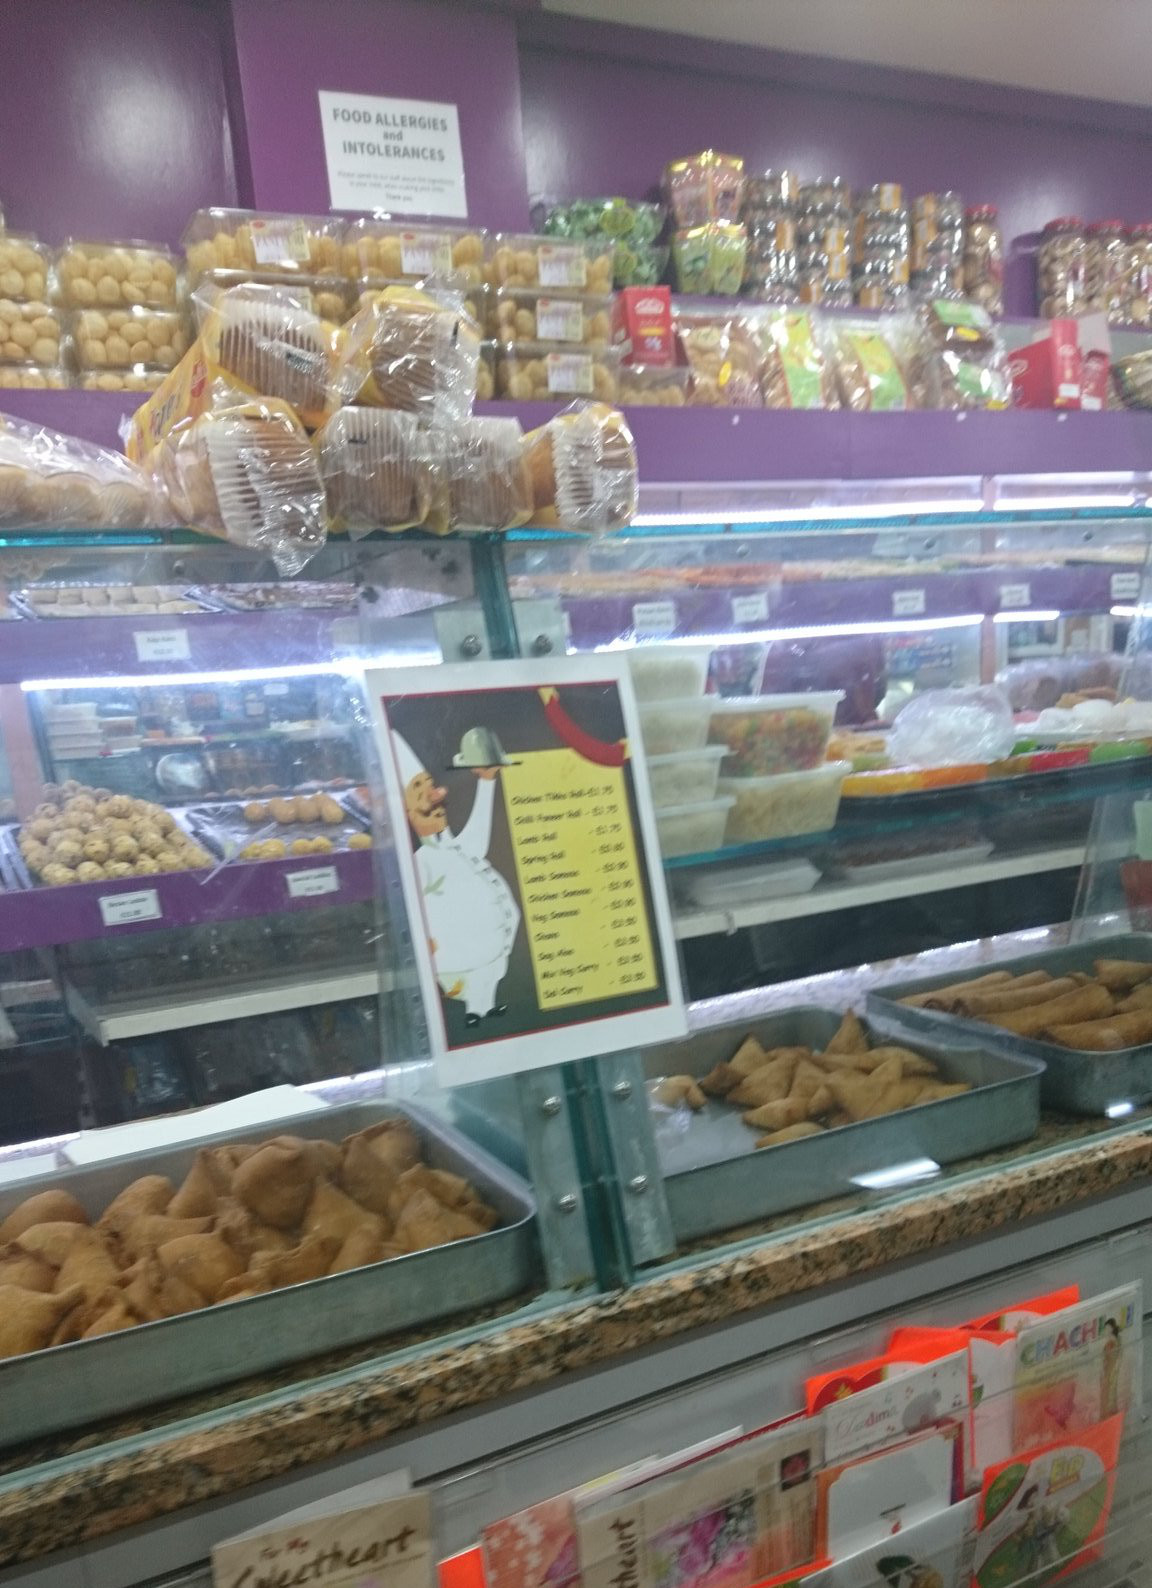 A glass-fronted display counter with trays of samosas.  Behind are shelves lined with Indian sweets.